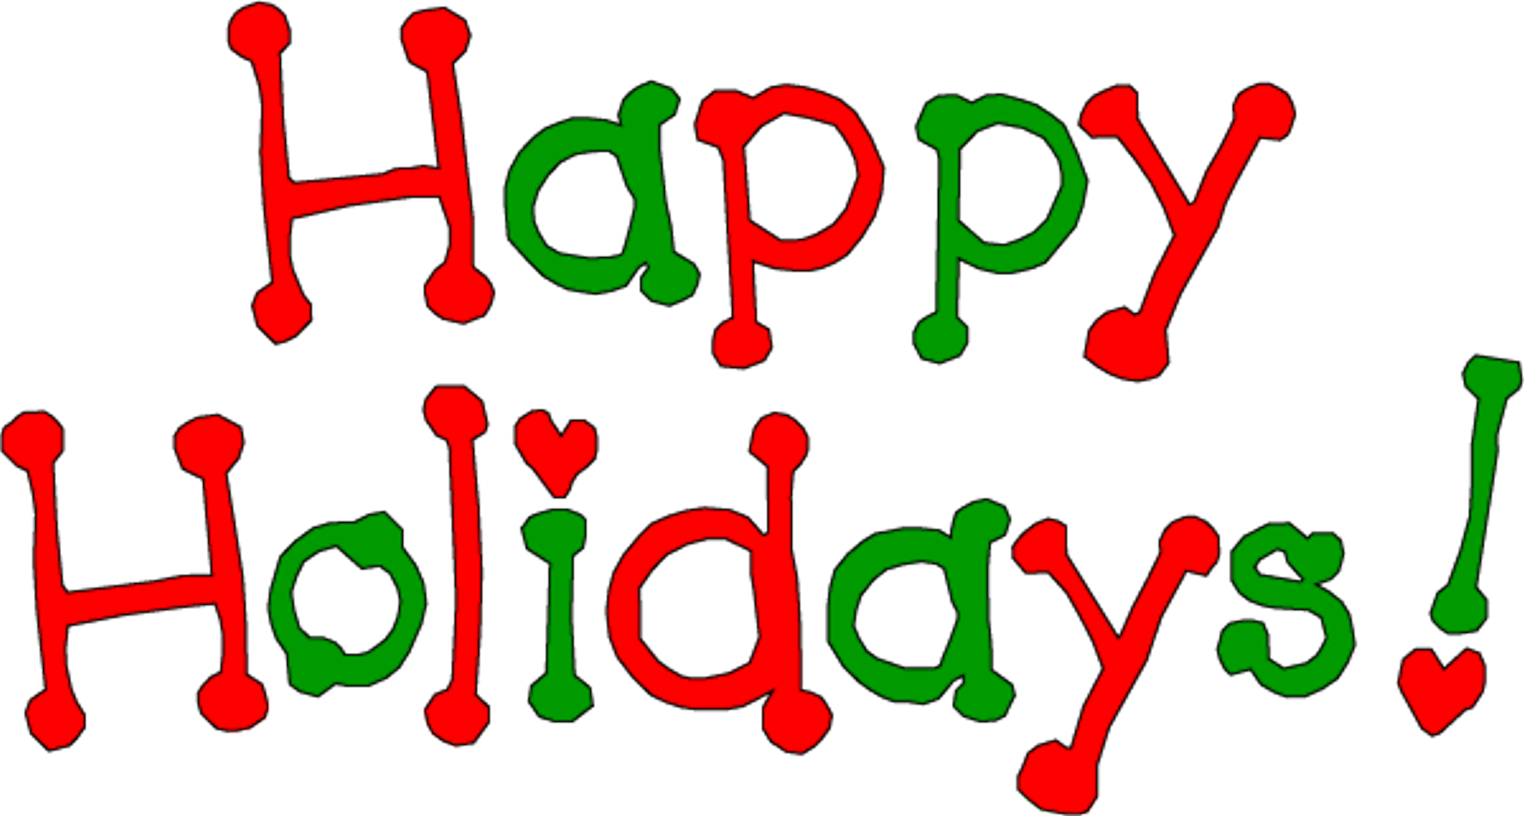 Holydays clipart holiday party  2015 Today Data Holidays